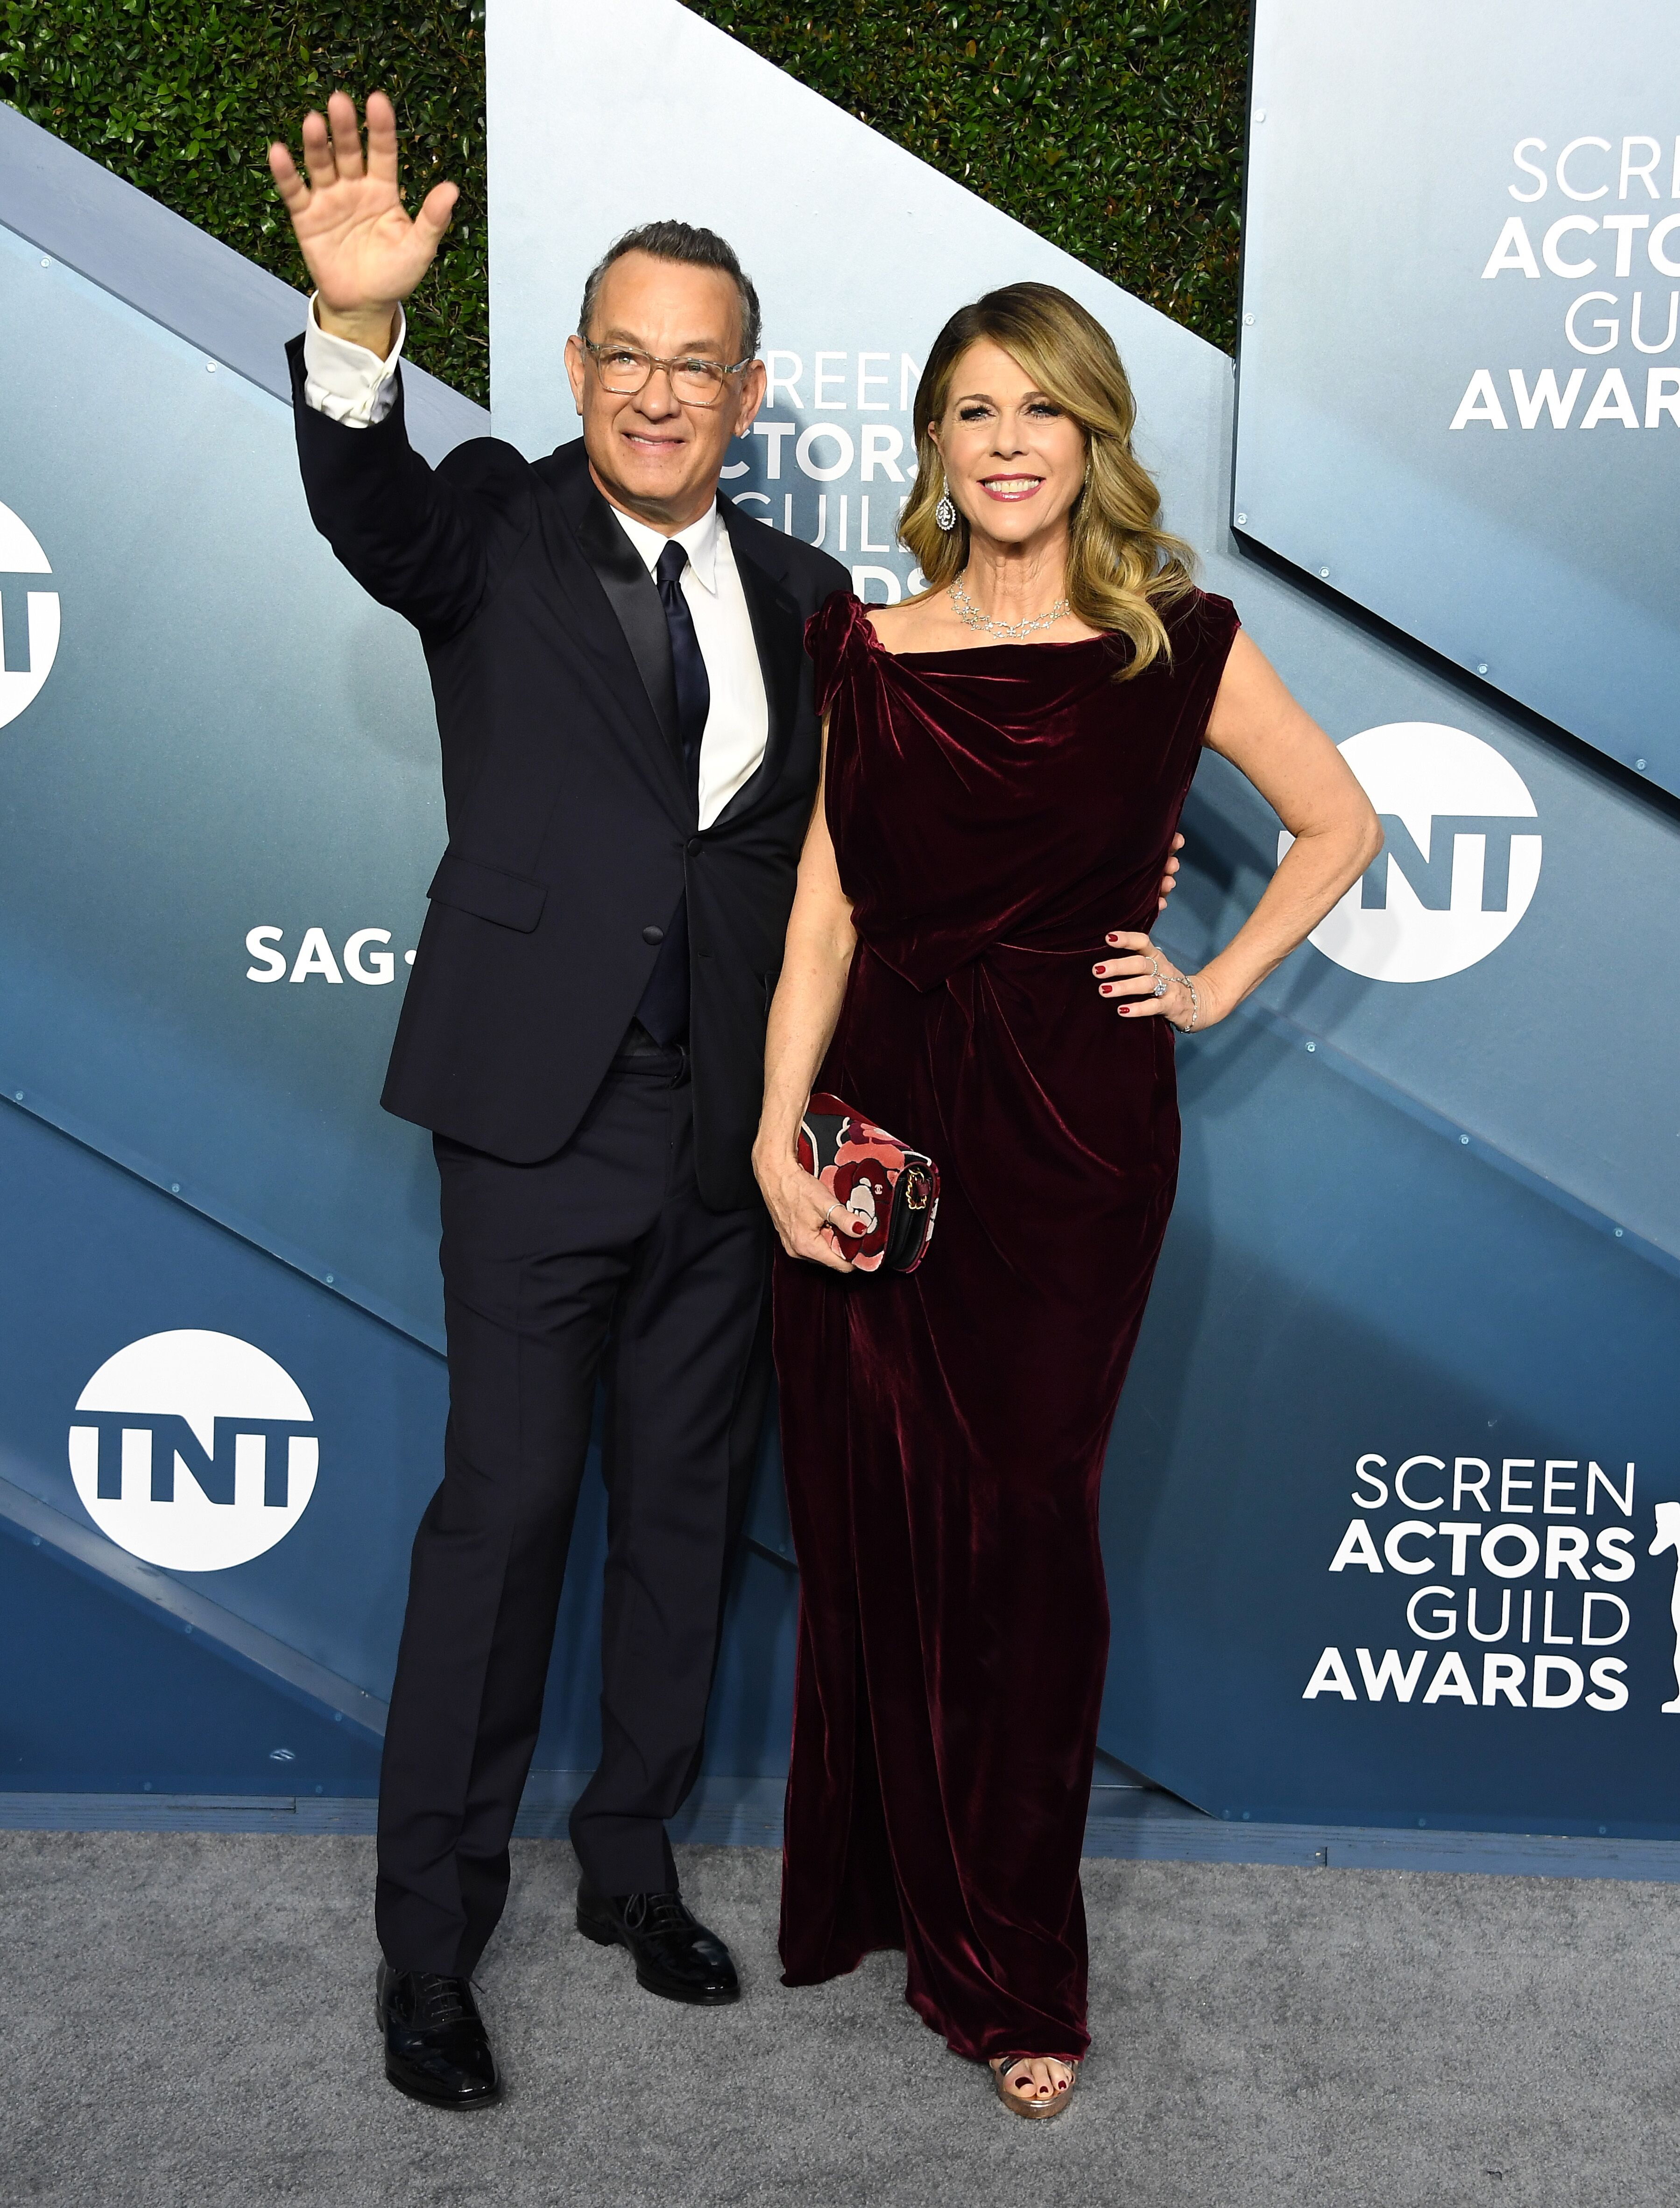 Tom Hanks and Rita Wilson arrives at the 26th Annual Screen ActorsGuild Awards at The Shrine Auditorium on January 19, 2020. | Source: Getty Images